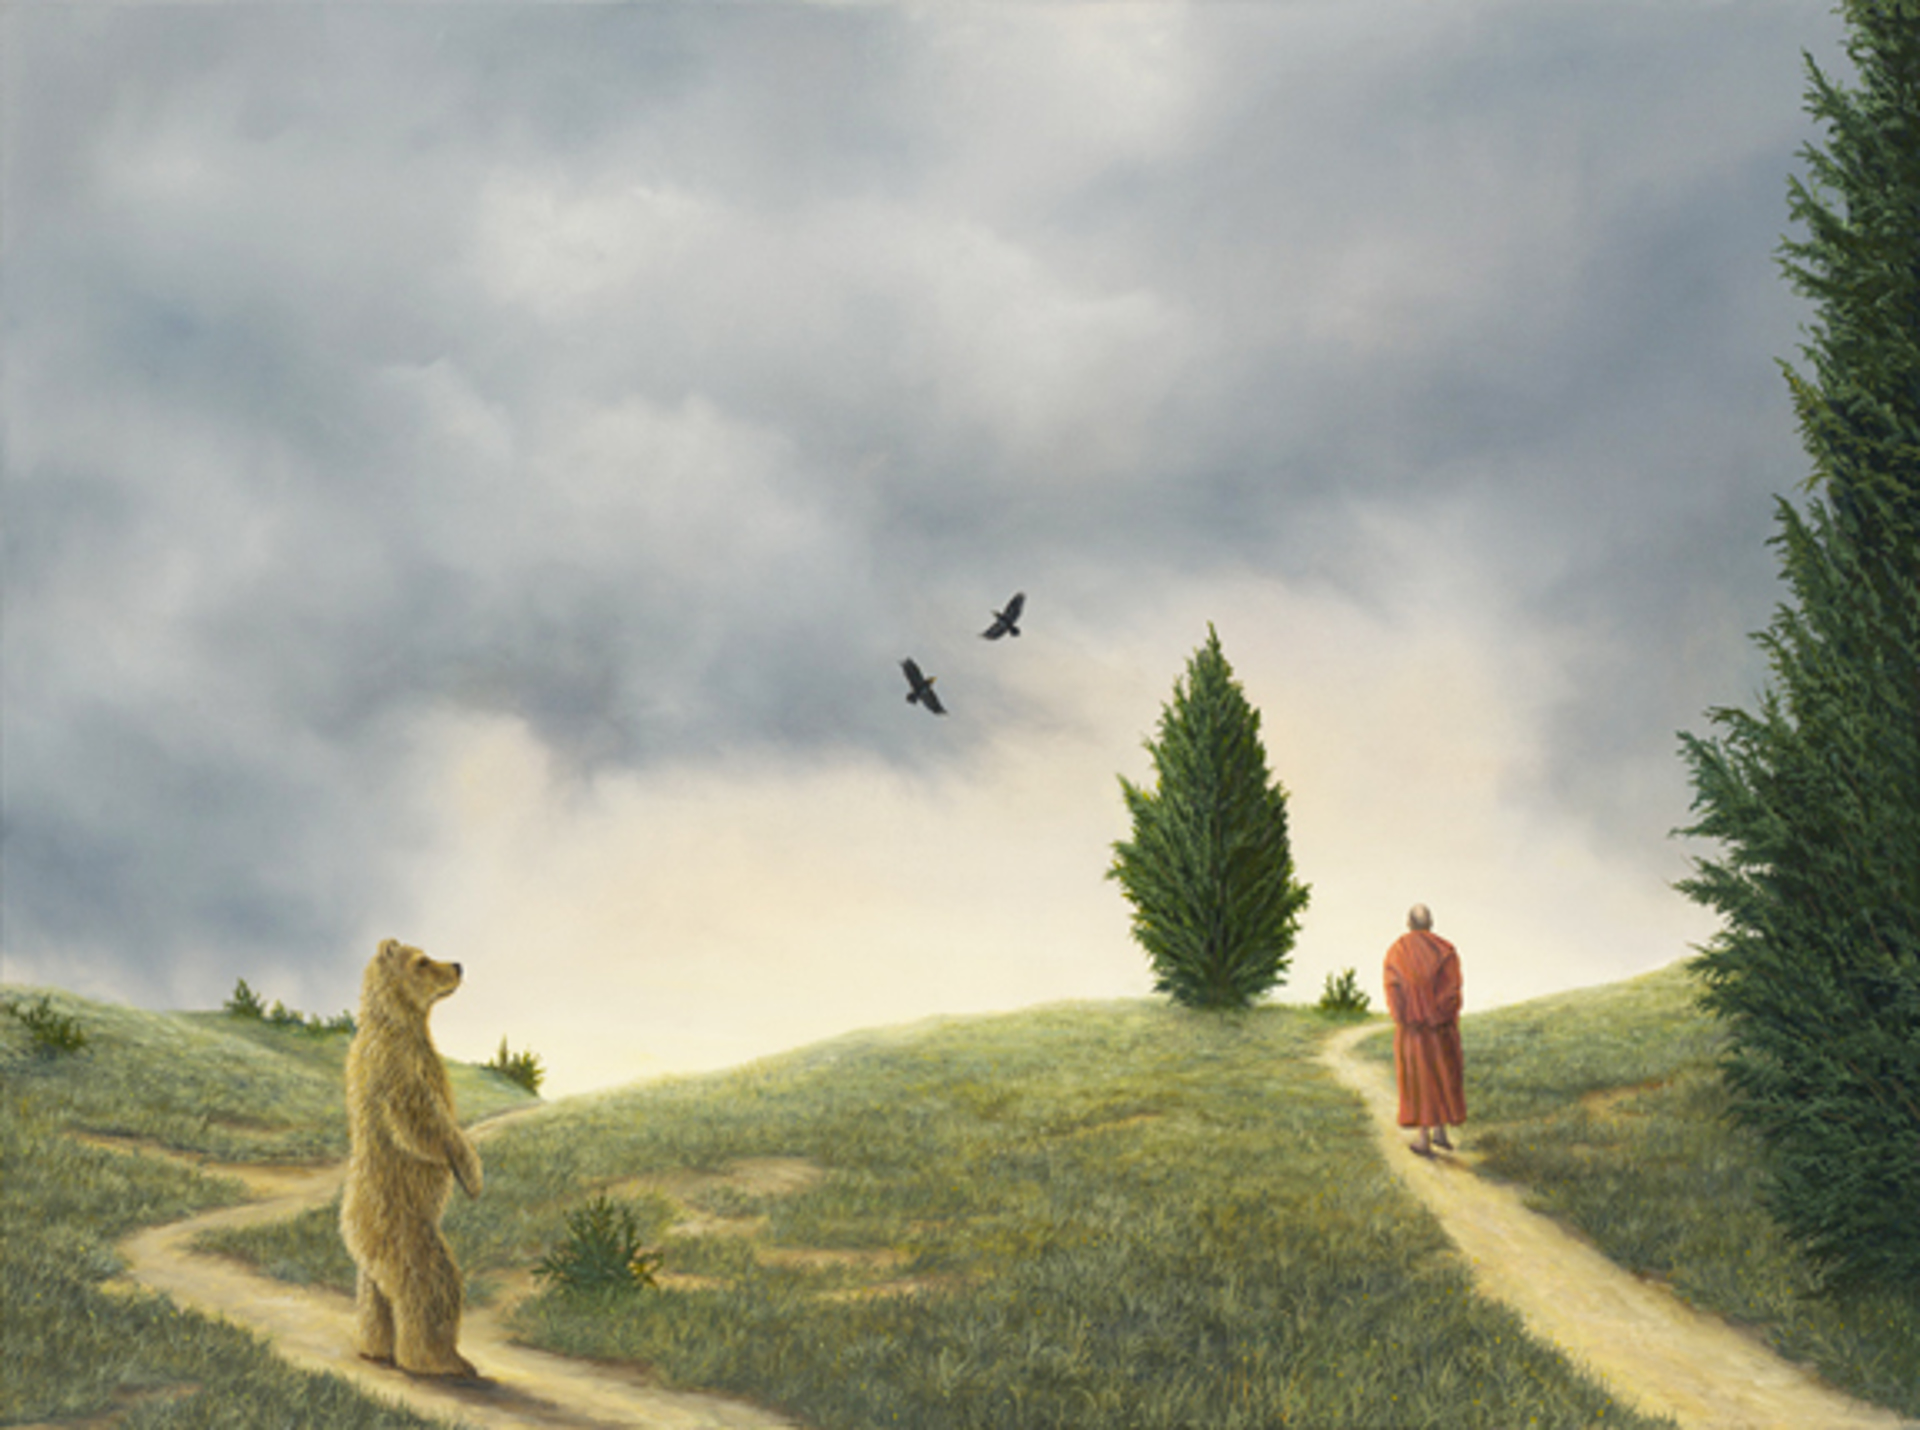 The Duality by Robert Bissell